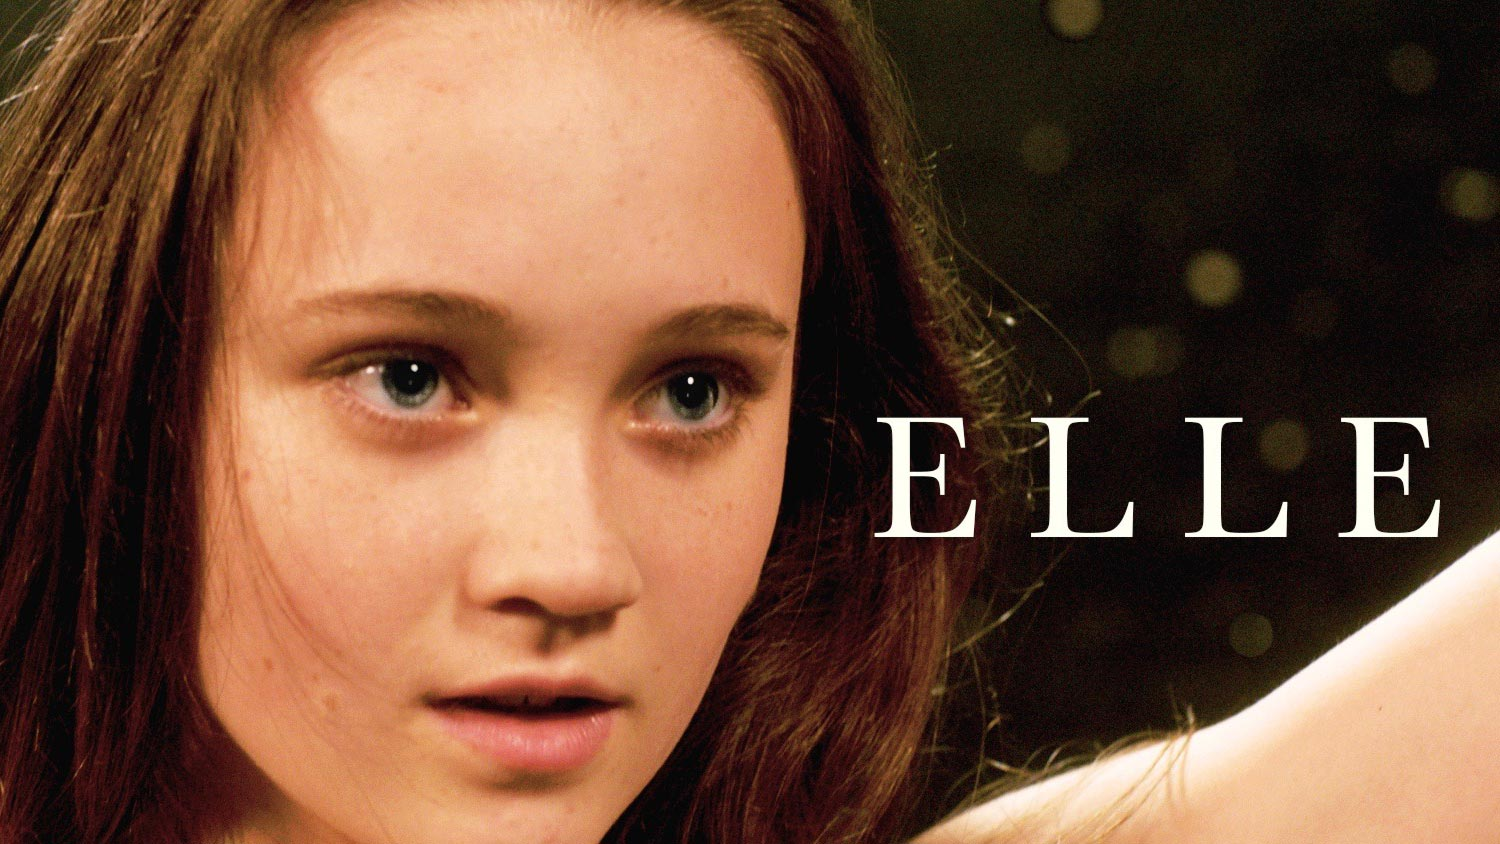 Elle Short Review – Dance, Dance, Dance - OC Movie Reviews - Movie Reviews, Movie News, Documentary Reviews, Short Films, Short Film Reviews, Trailers, Movie Trailers, Interviews, film reviews, film news, hollywood, indie films, documentaries